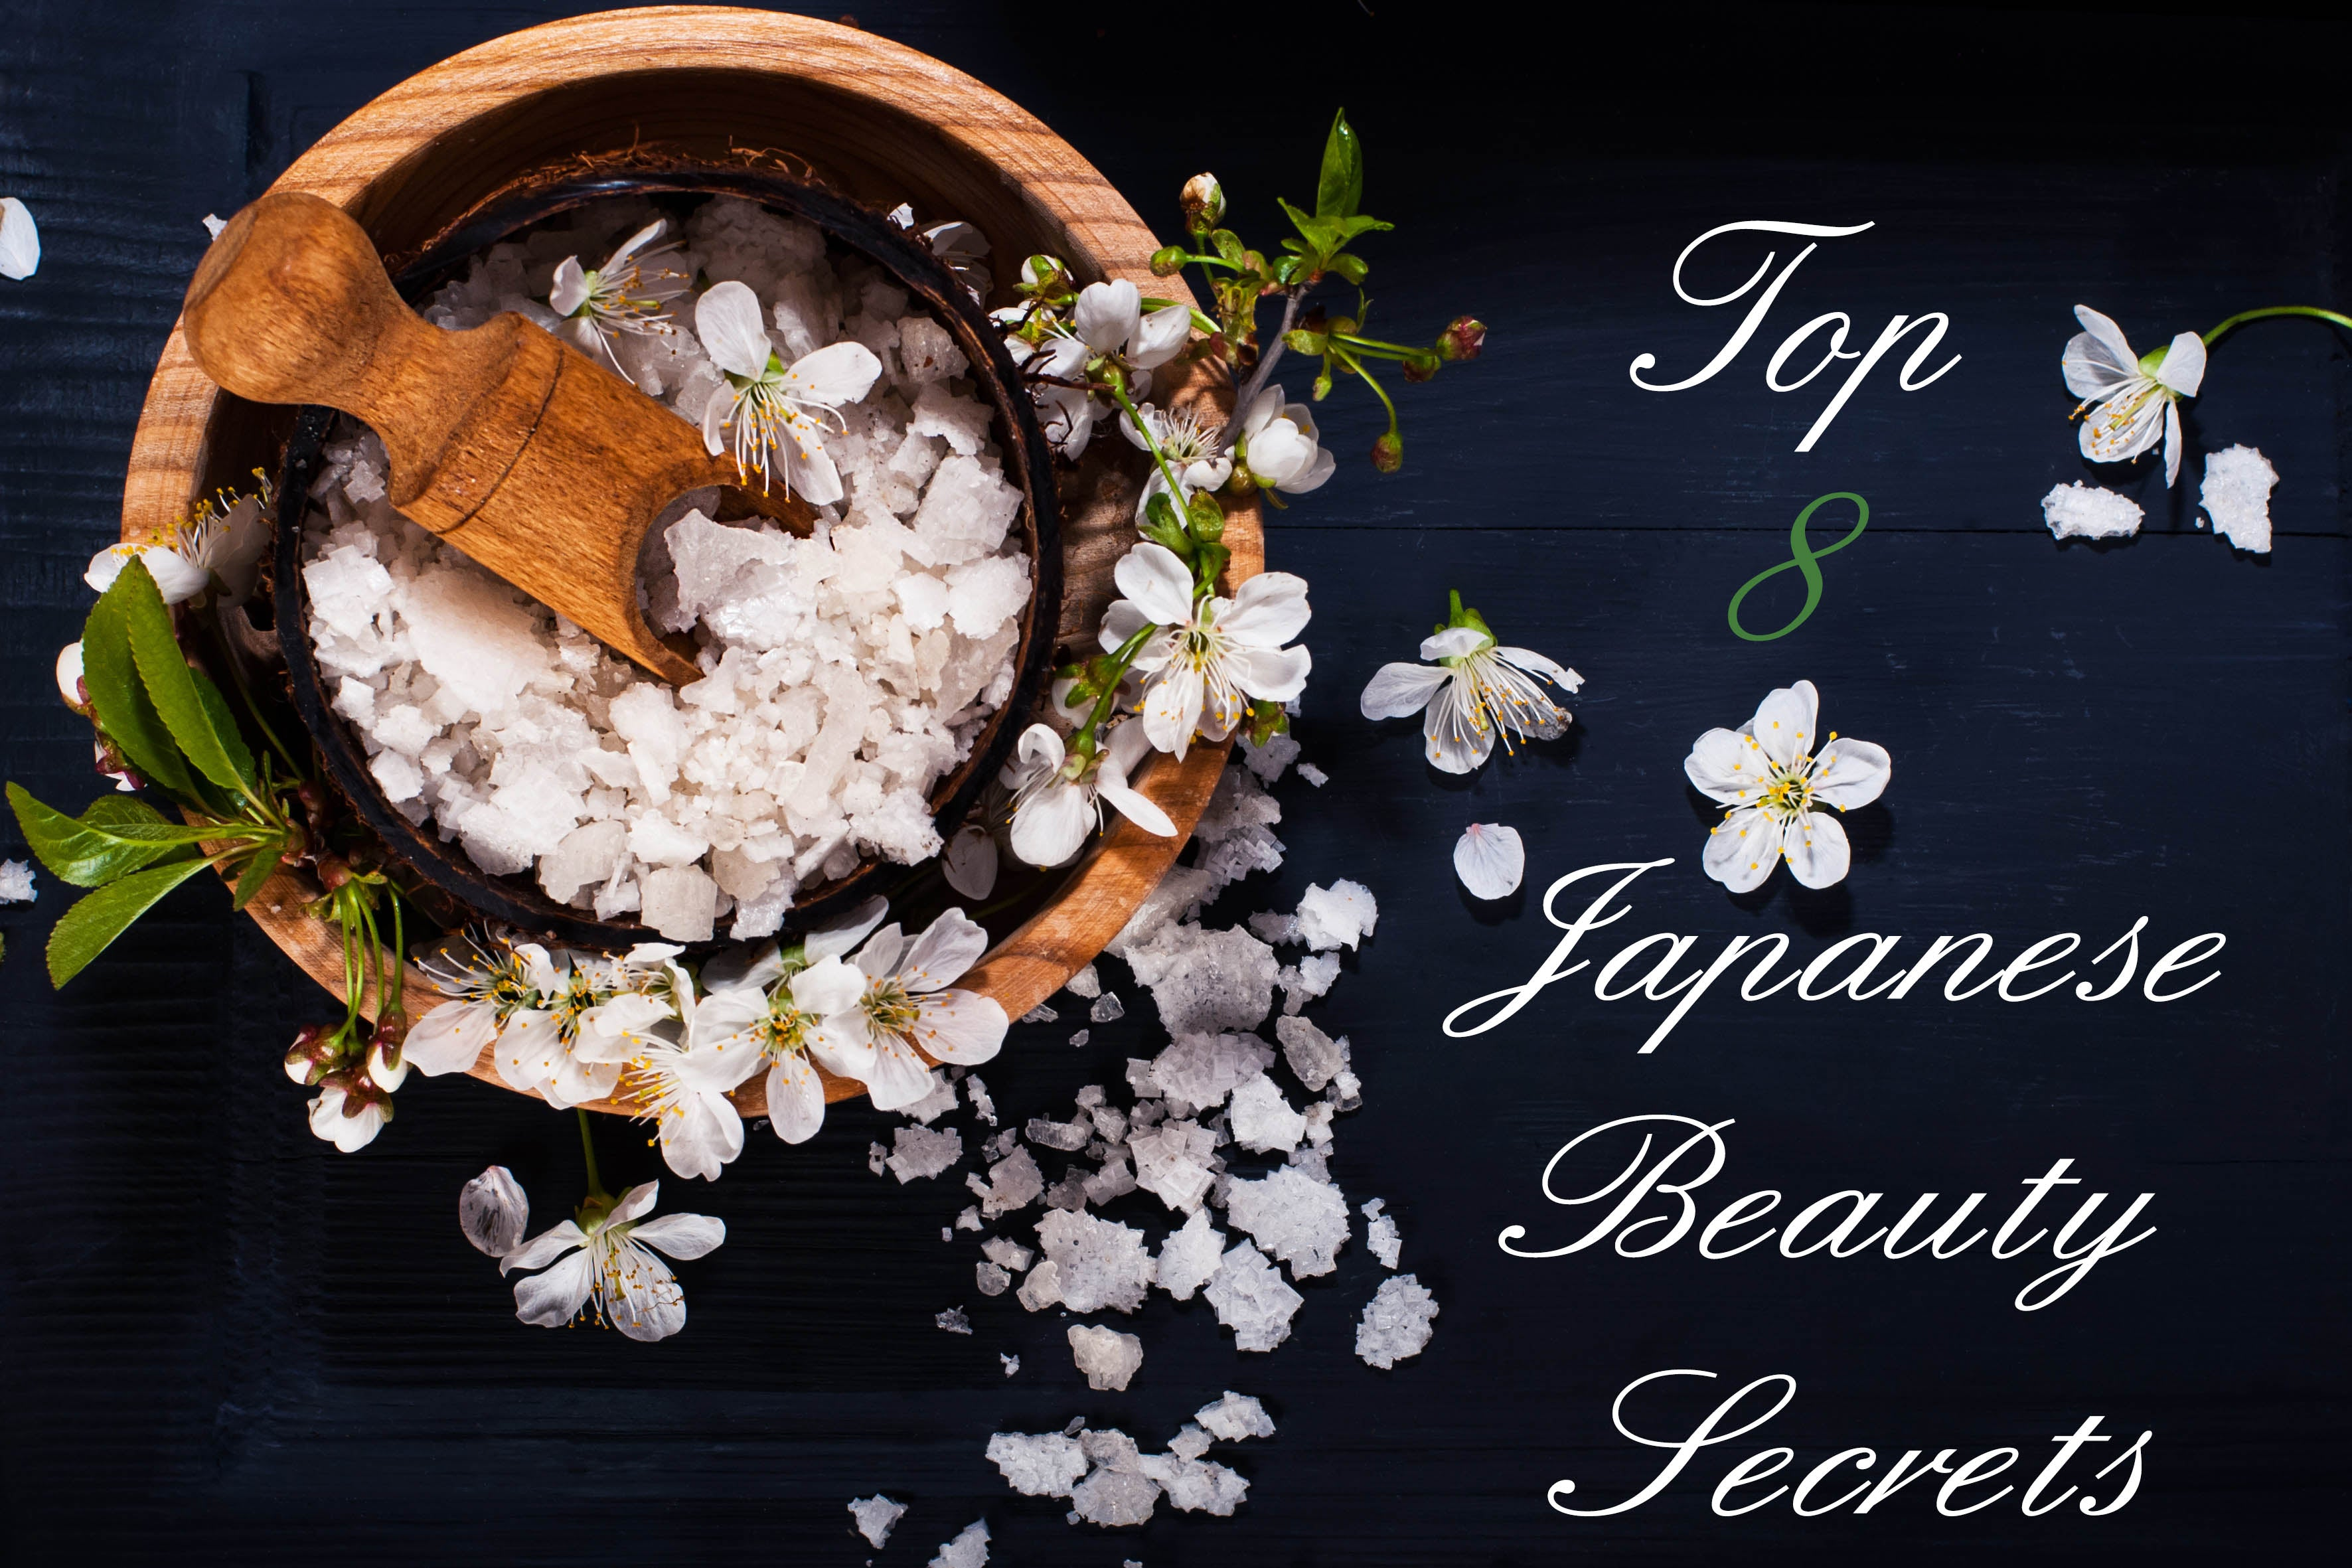 Best Japanese Beauty Secrets